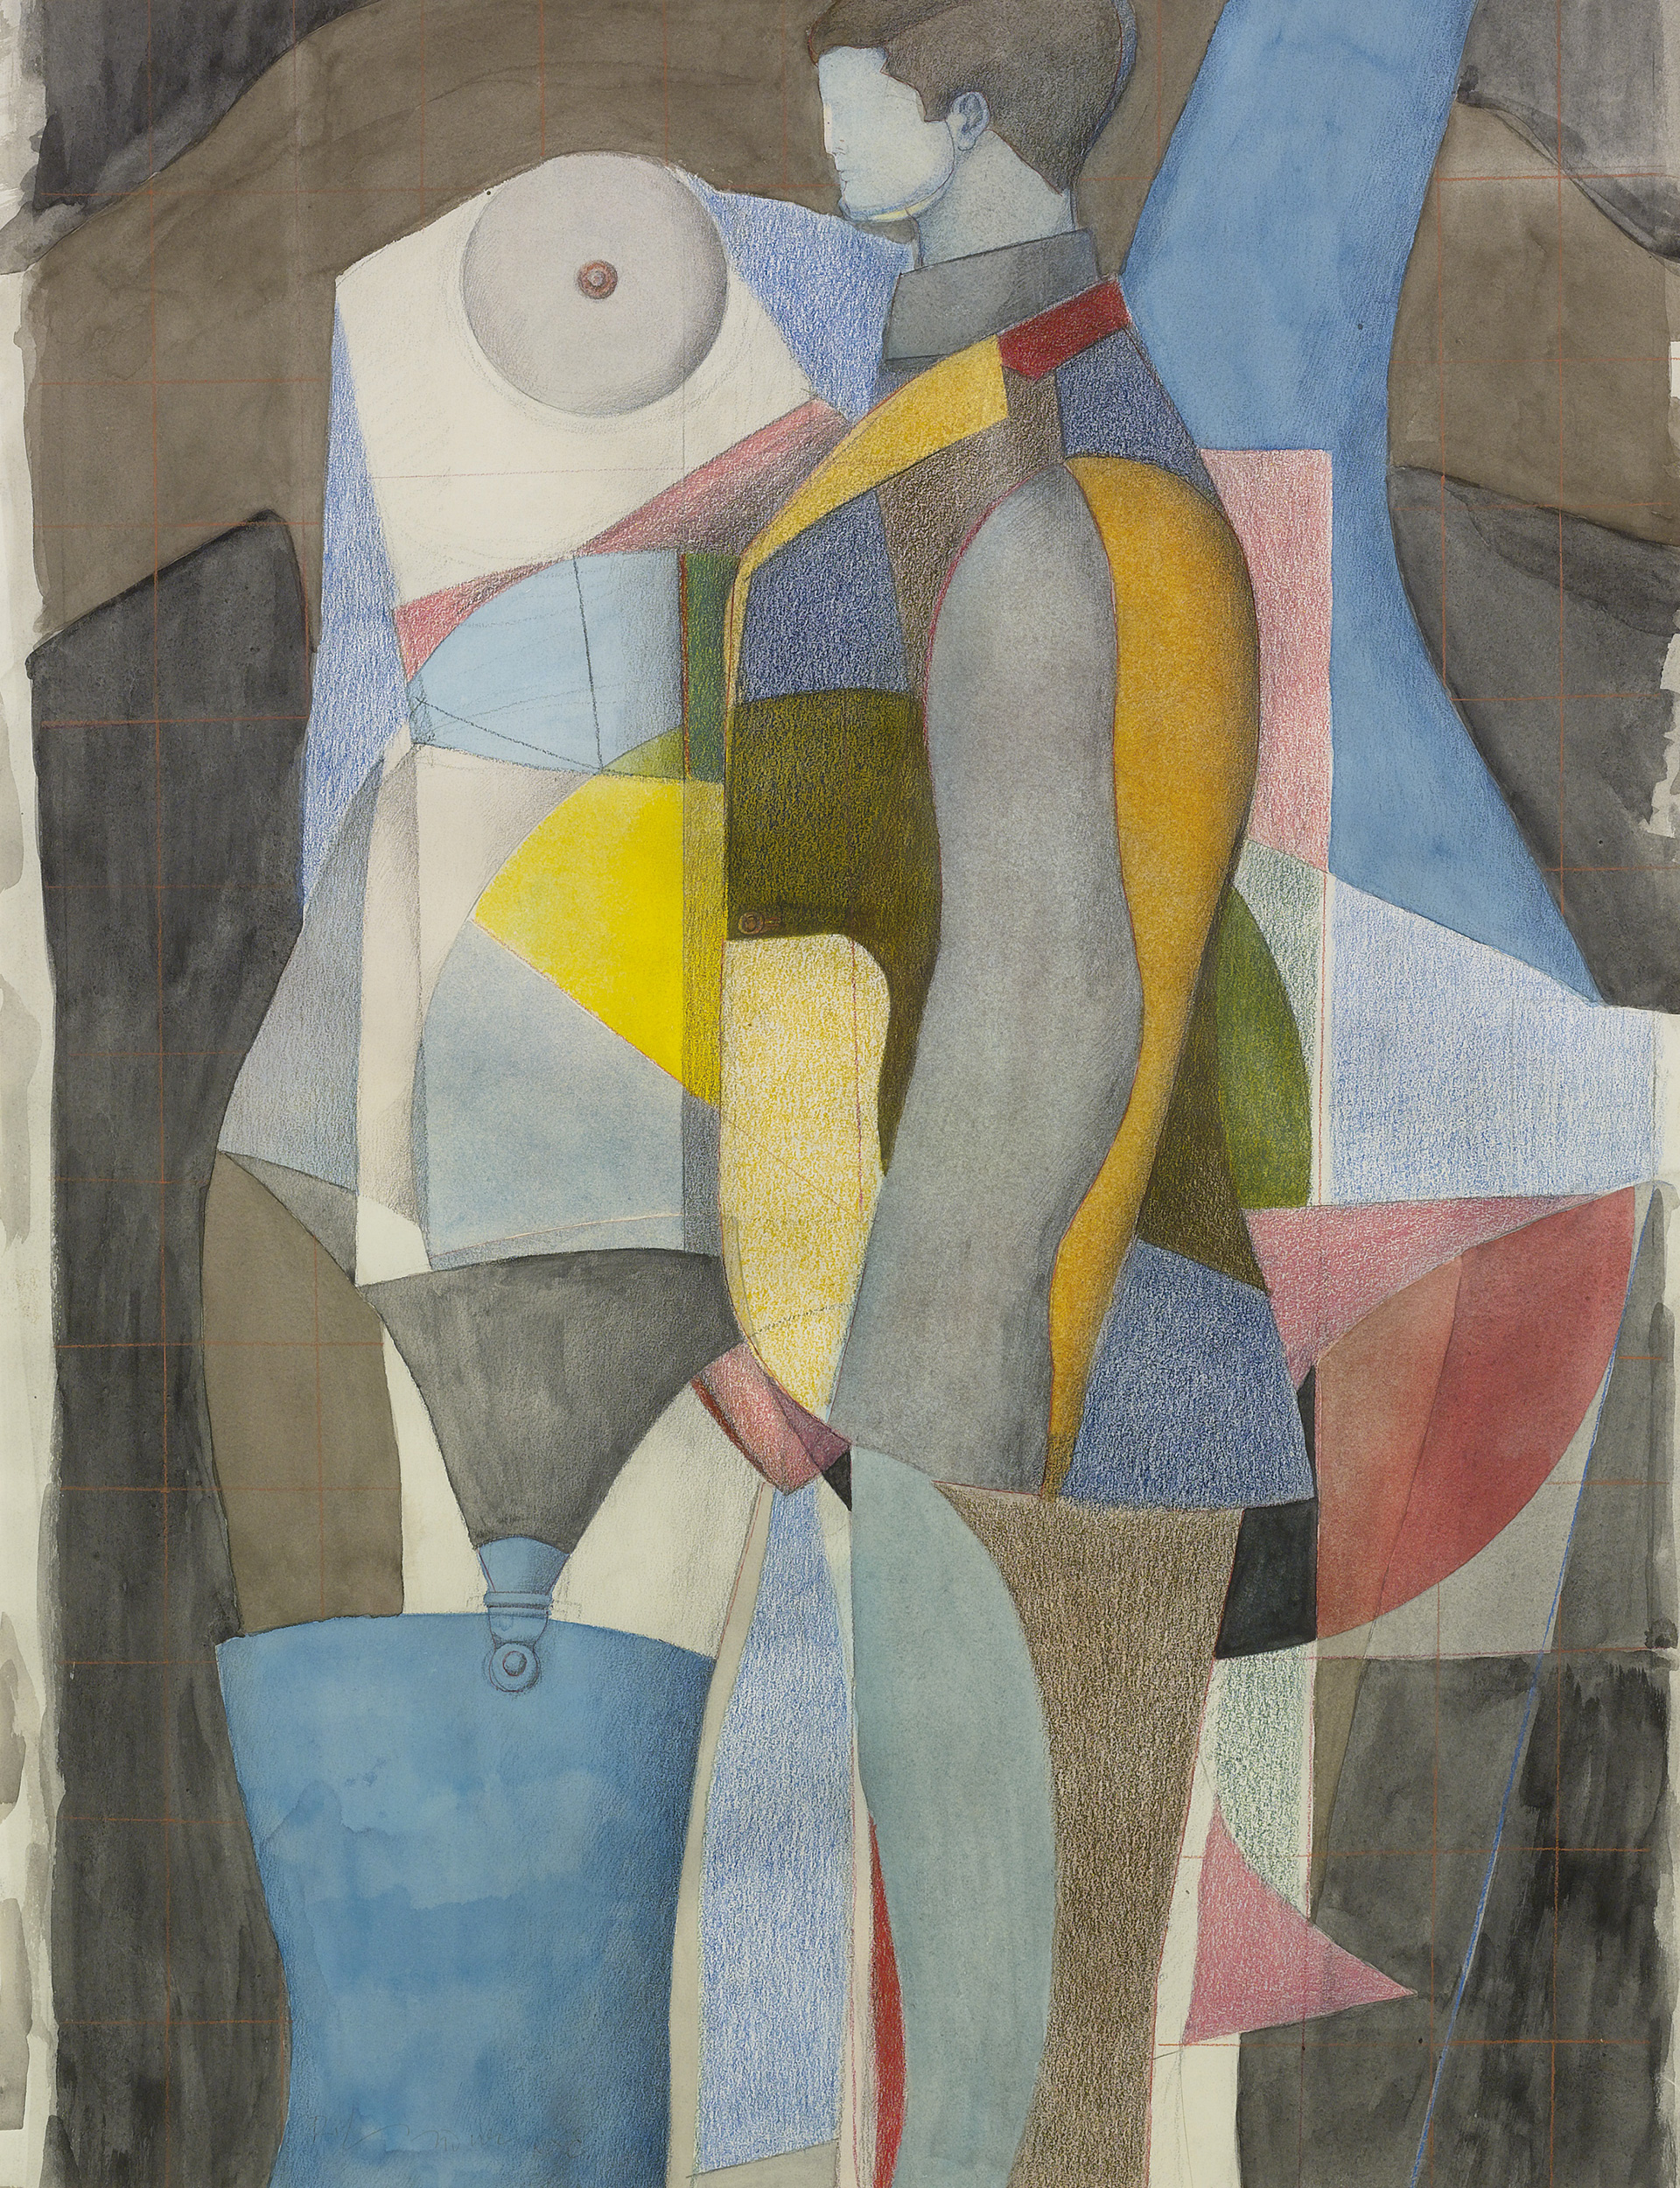 Untitled (Figure with garterbelt), 1965